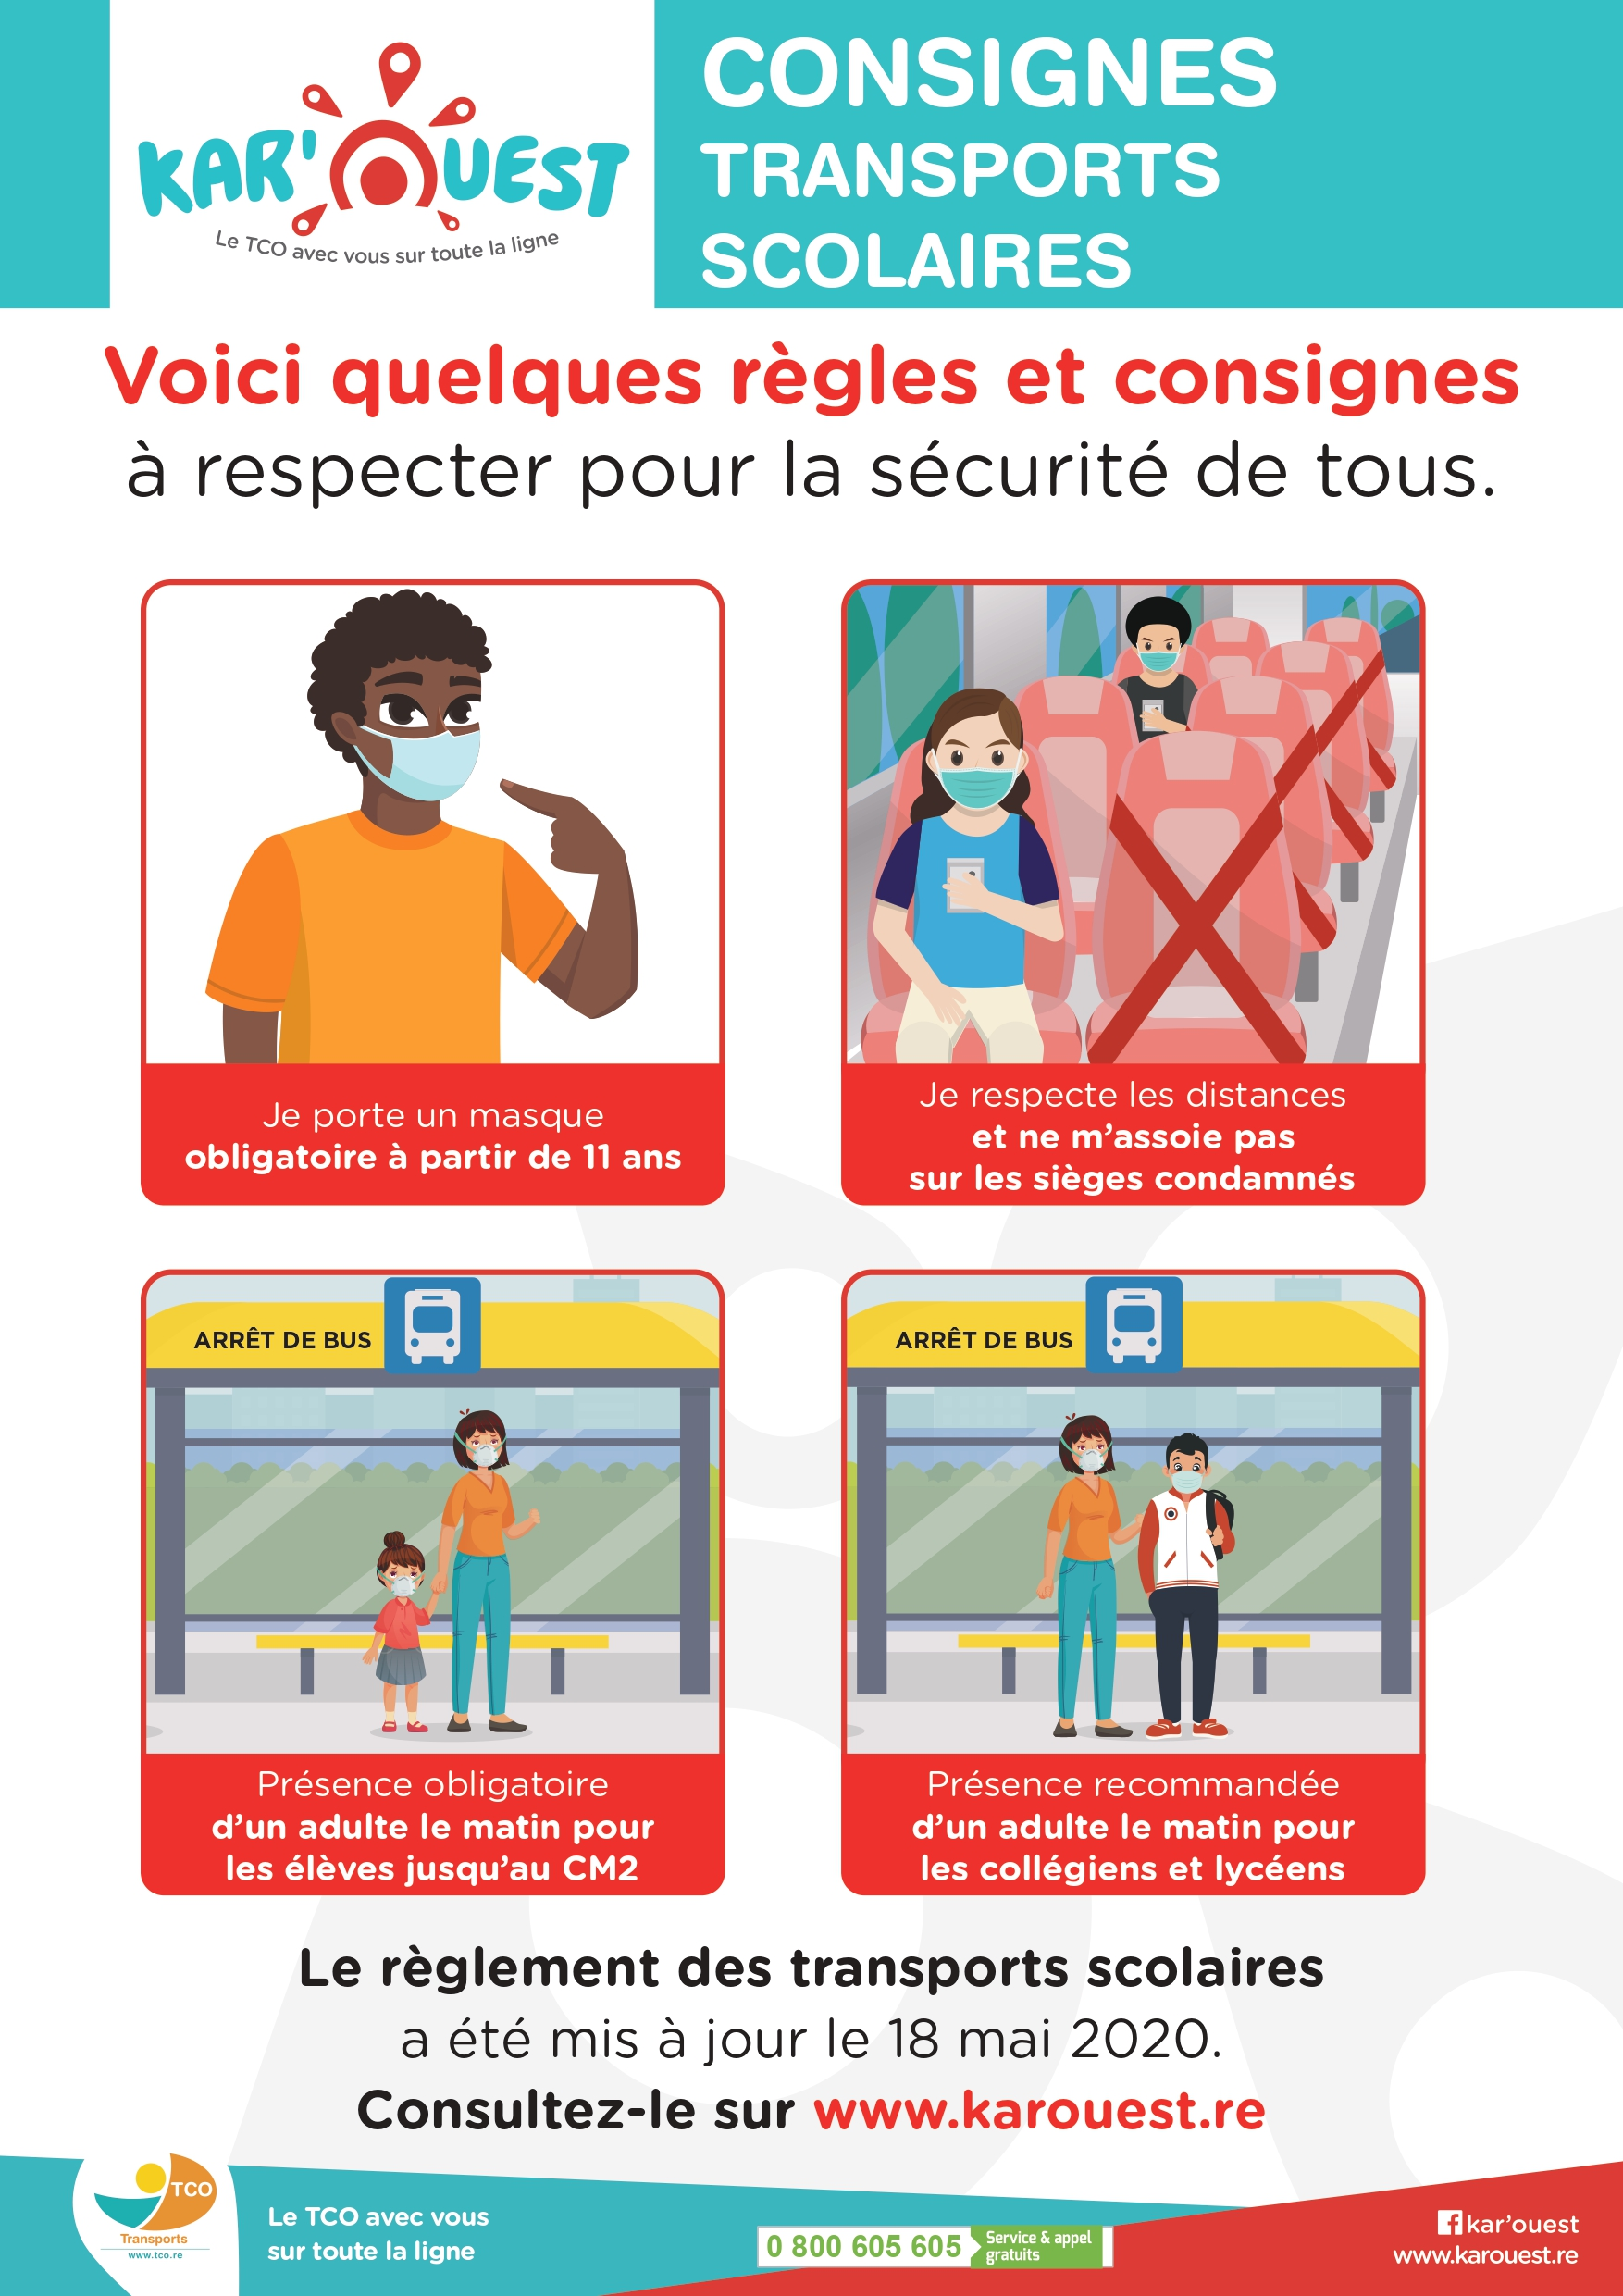 consignes-transports-scolaires-a3-page-0001.jpg